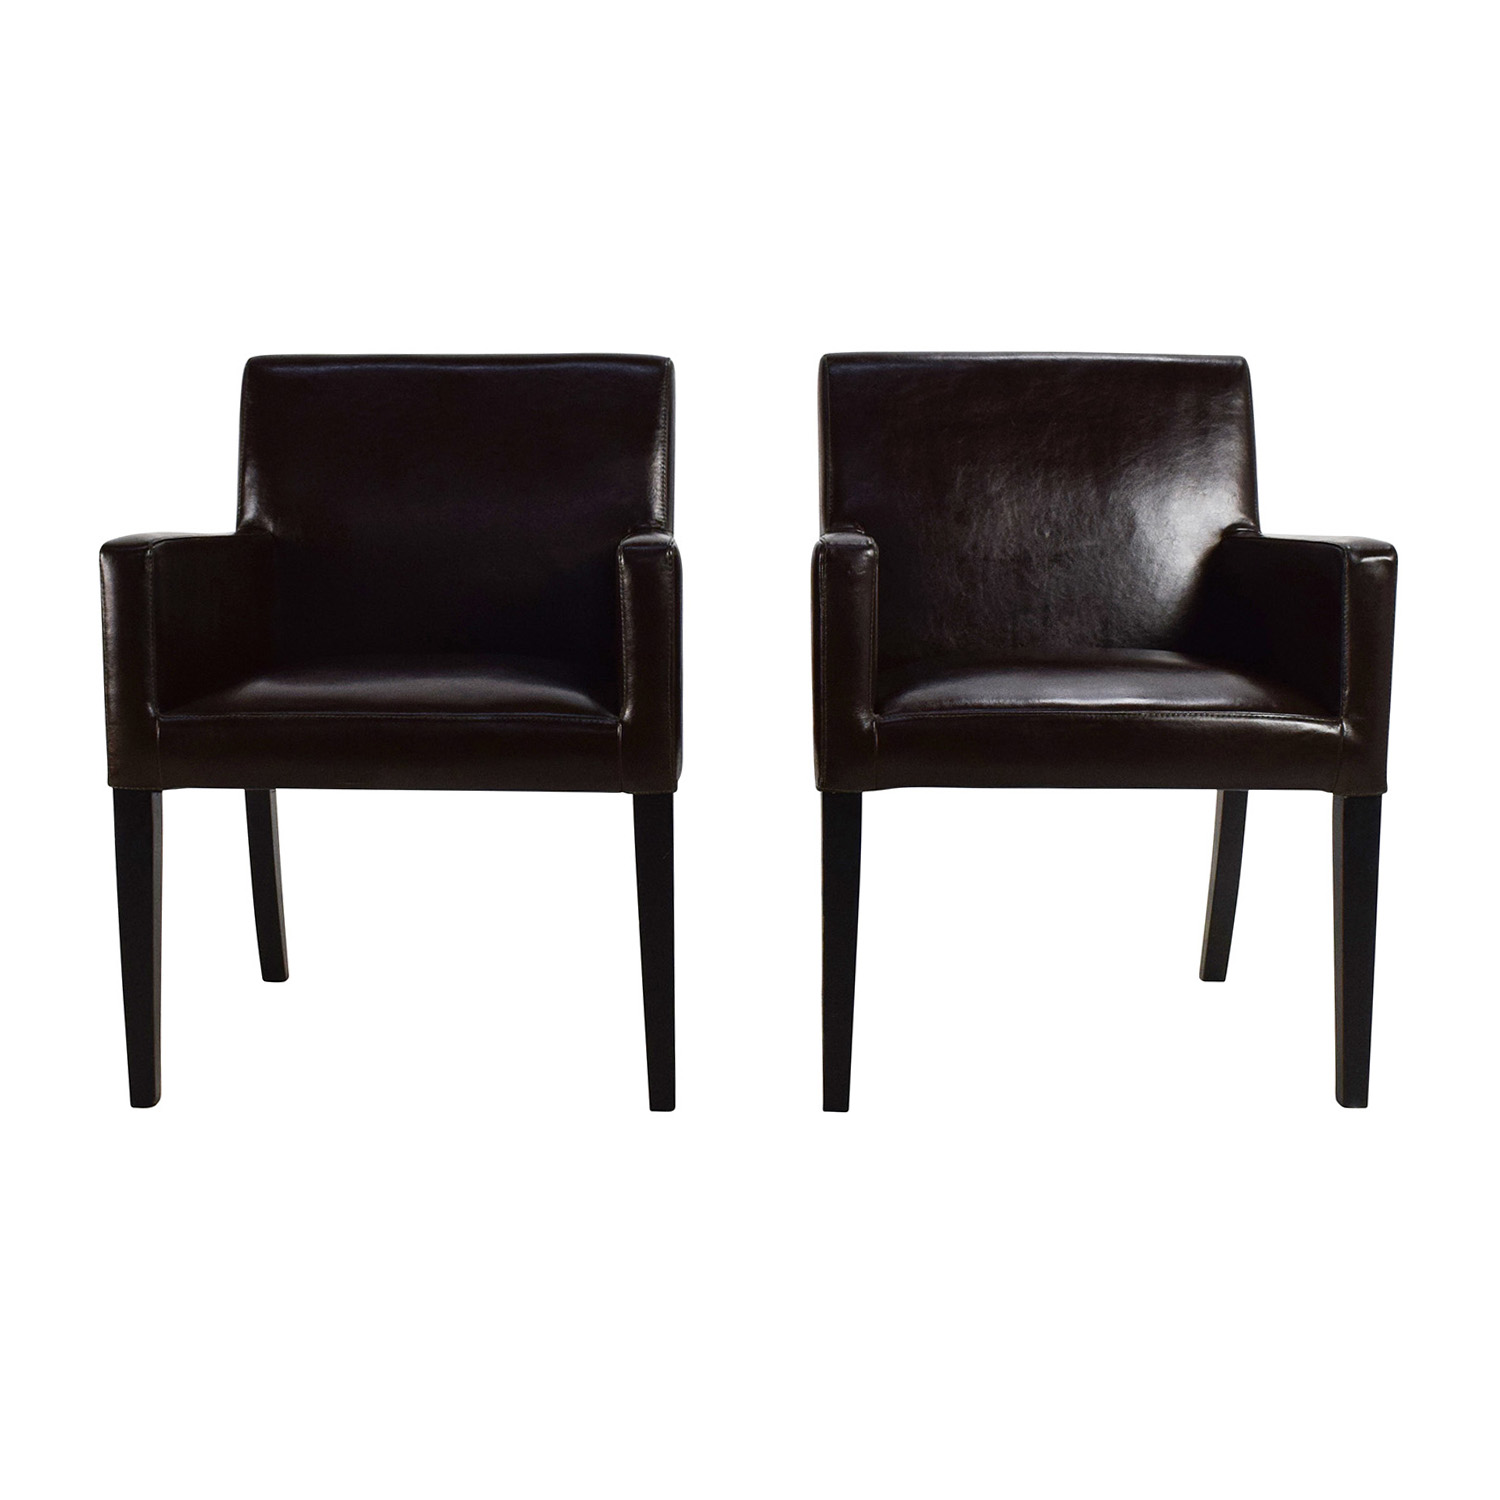 Black Leather Office Chairs coupon